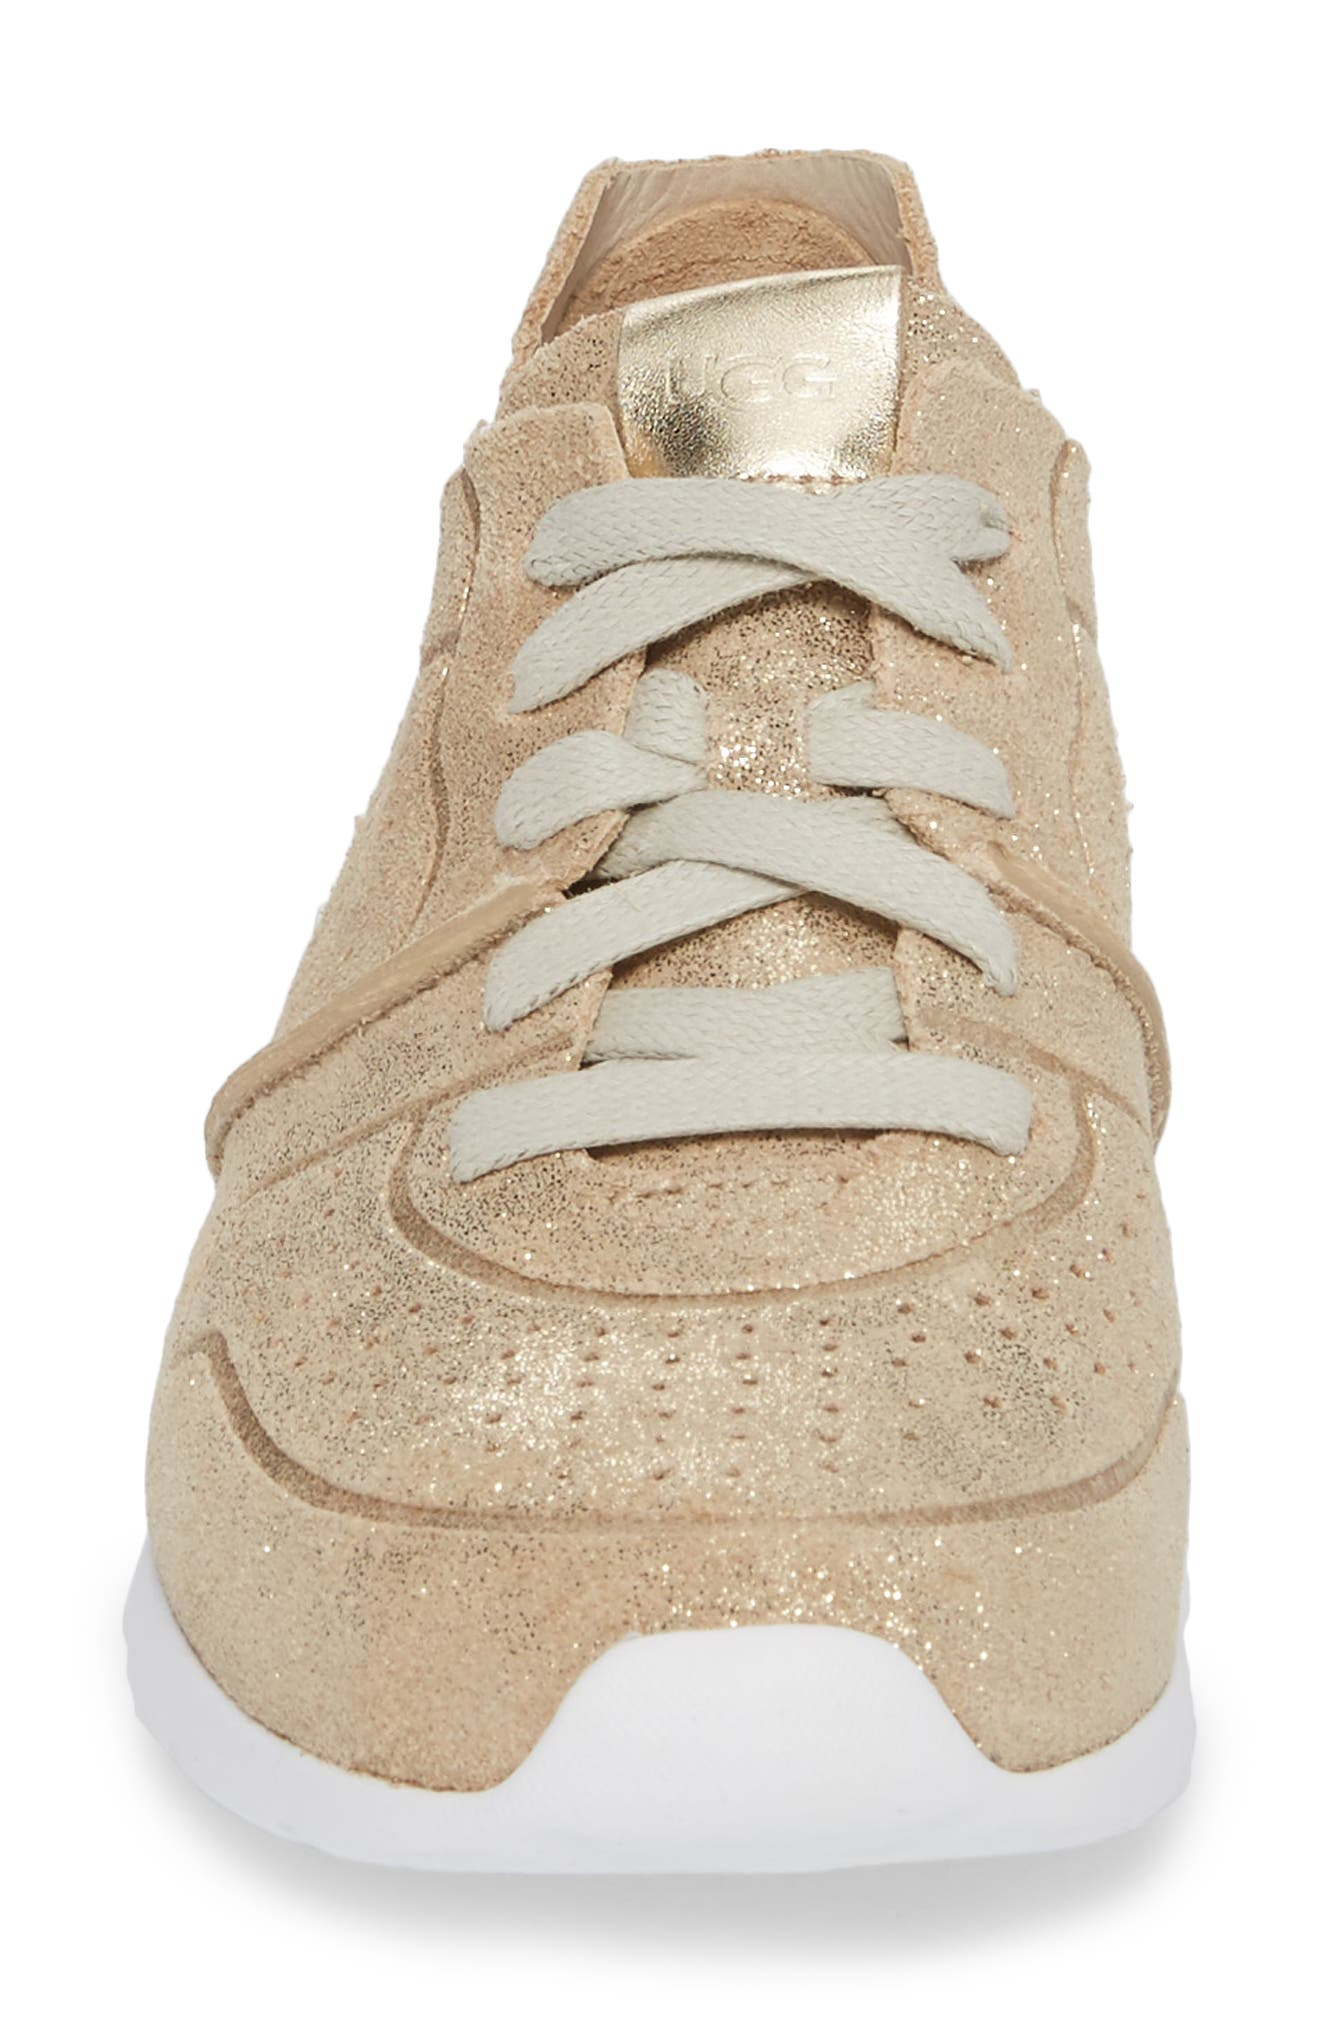 Tye Stardust Sneaker,                             Alternate thumbnail 4, color,                             GOLD LEATHER